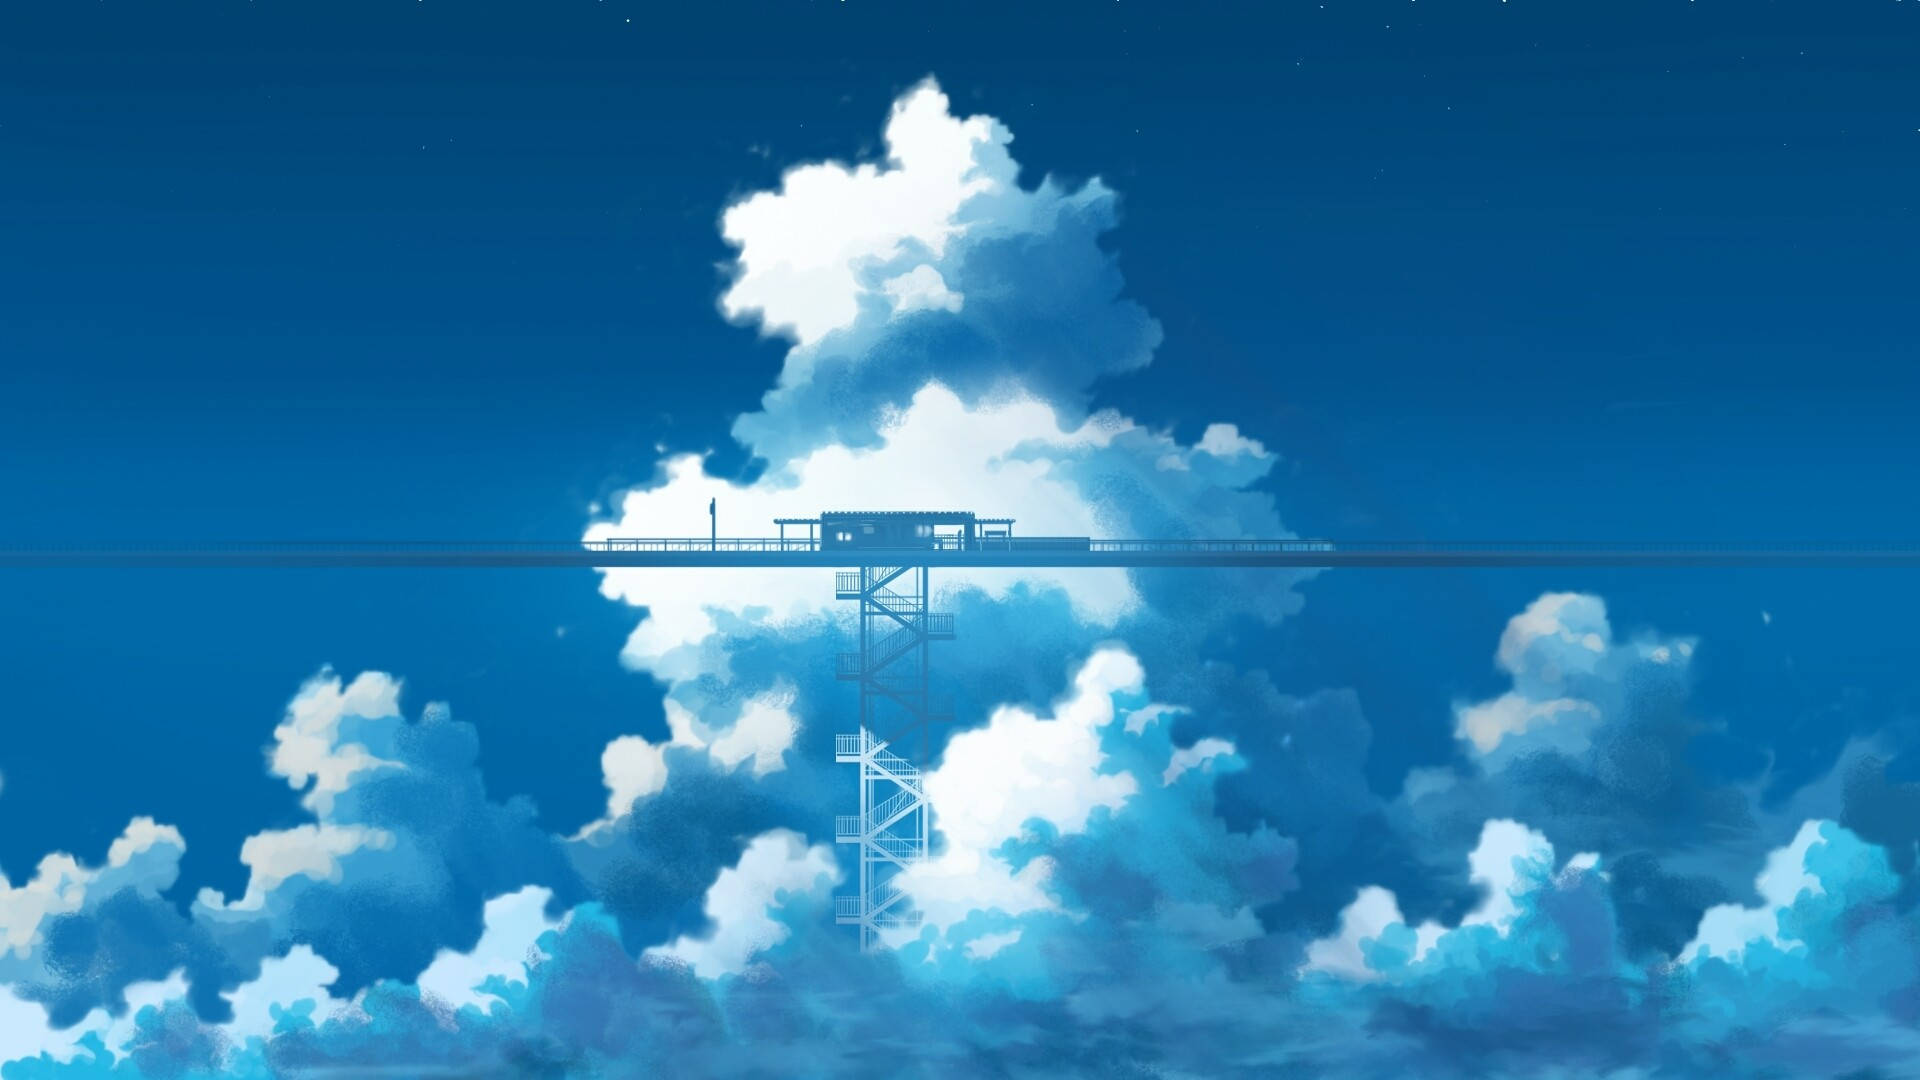 Anime Clouds PC Wallpaper